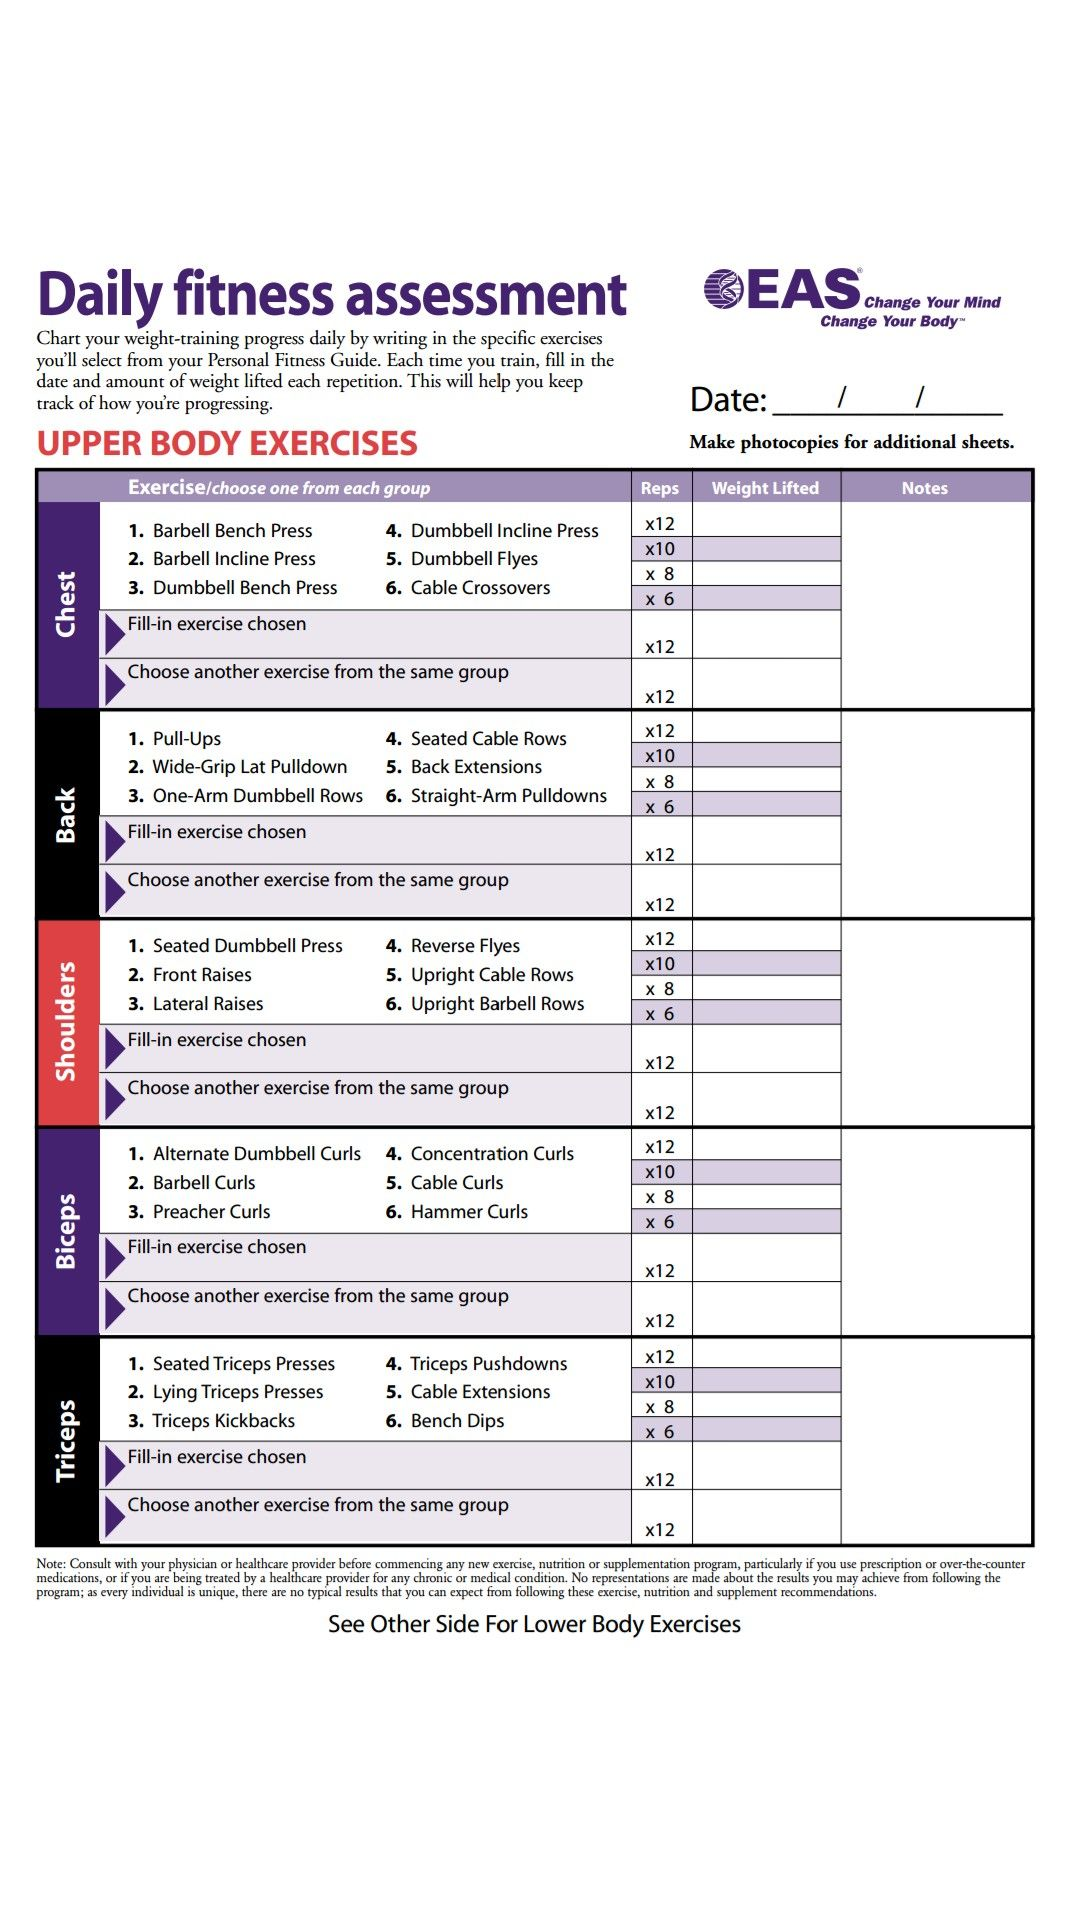 ae6988e173d2b379f898397b7ce19084 Upper Exercise Plans For Home on home physical therapy, home health plan, diet plan, physical fitness plan, personal trainer plan, home pregnancy, weight loss plan, physical therapy plan, home fitness, home safety plan, home care plan, home weight lifting exercises, home discipline plan, home parenting plan, home stress,